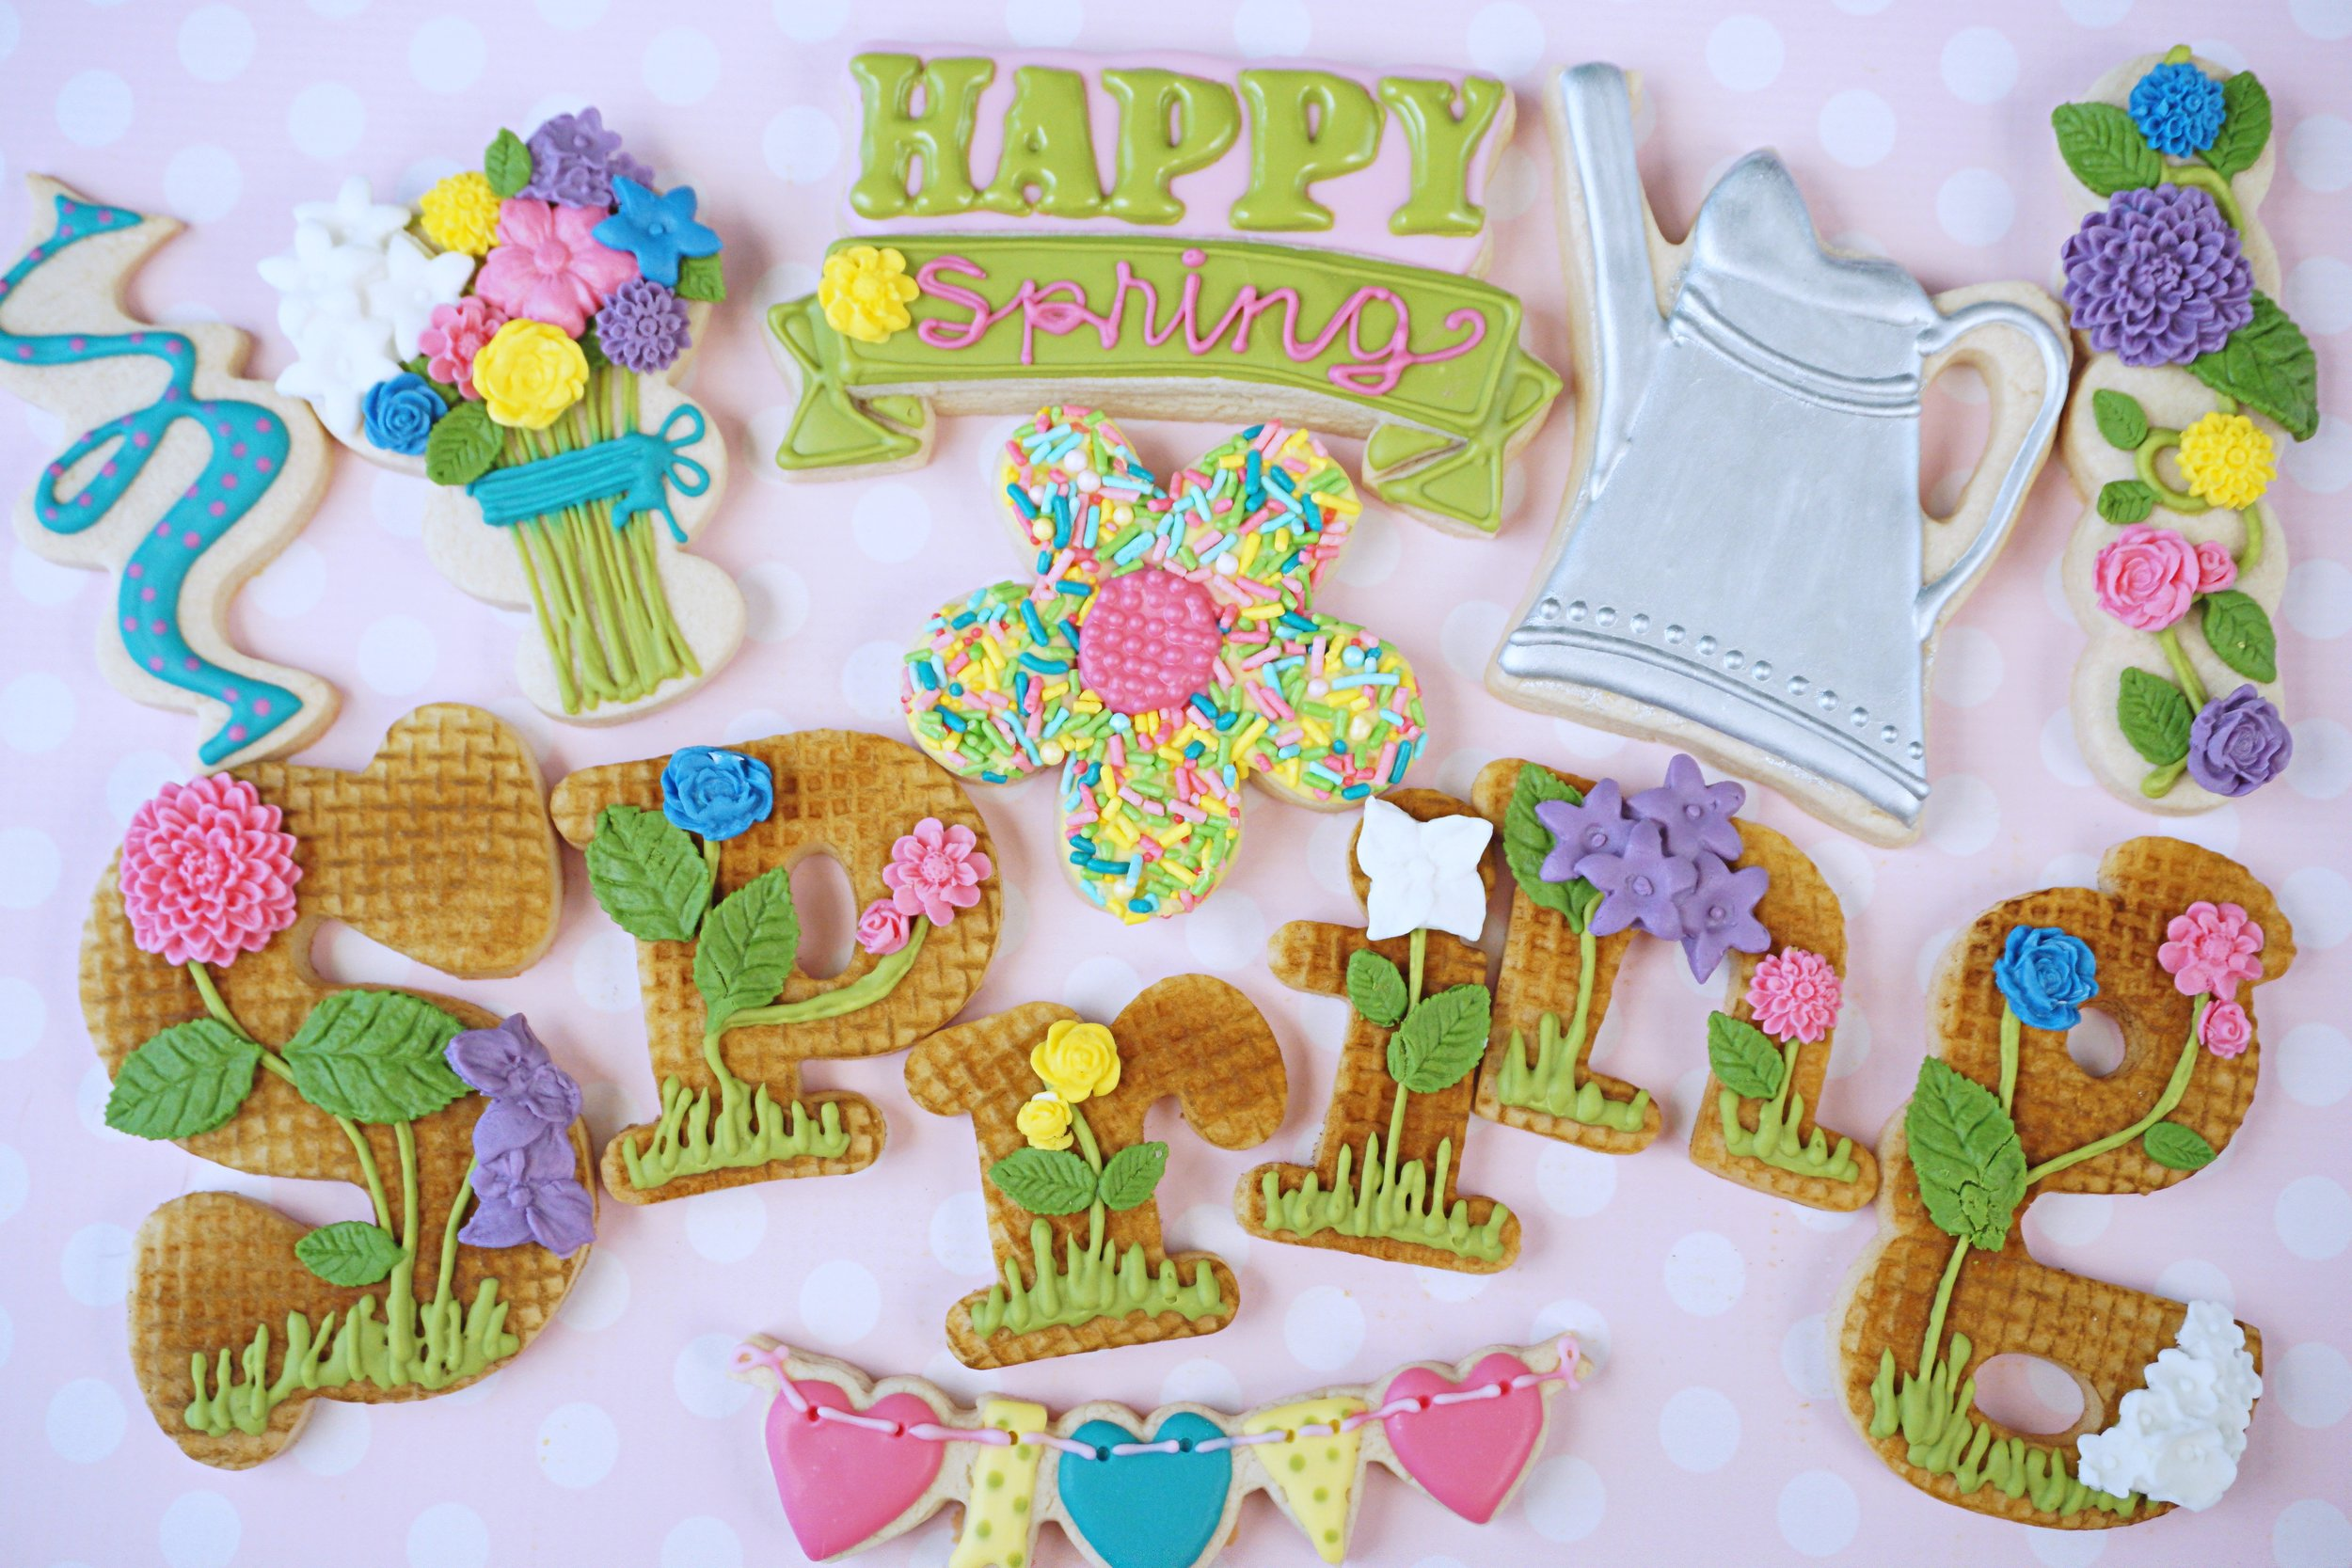 Happy Spring Decorated Cookie Collection